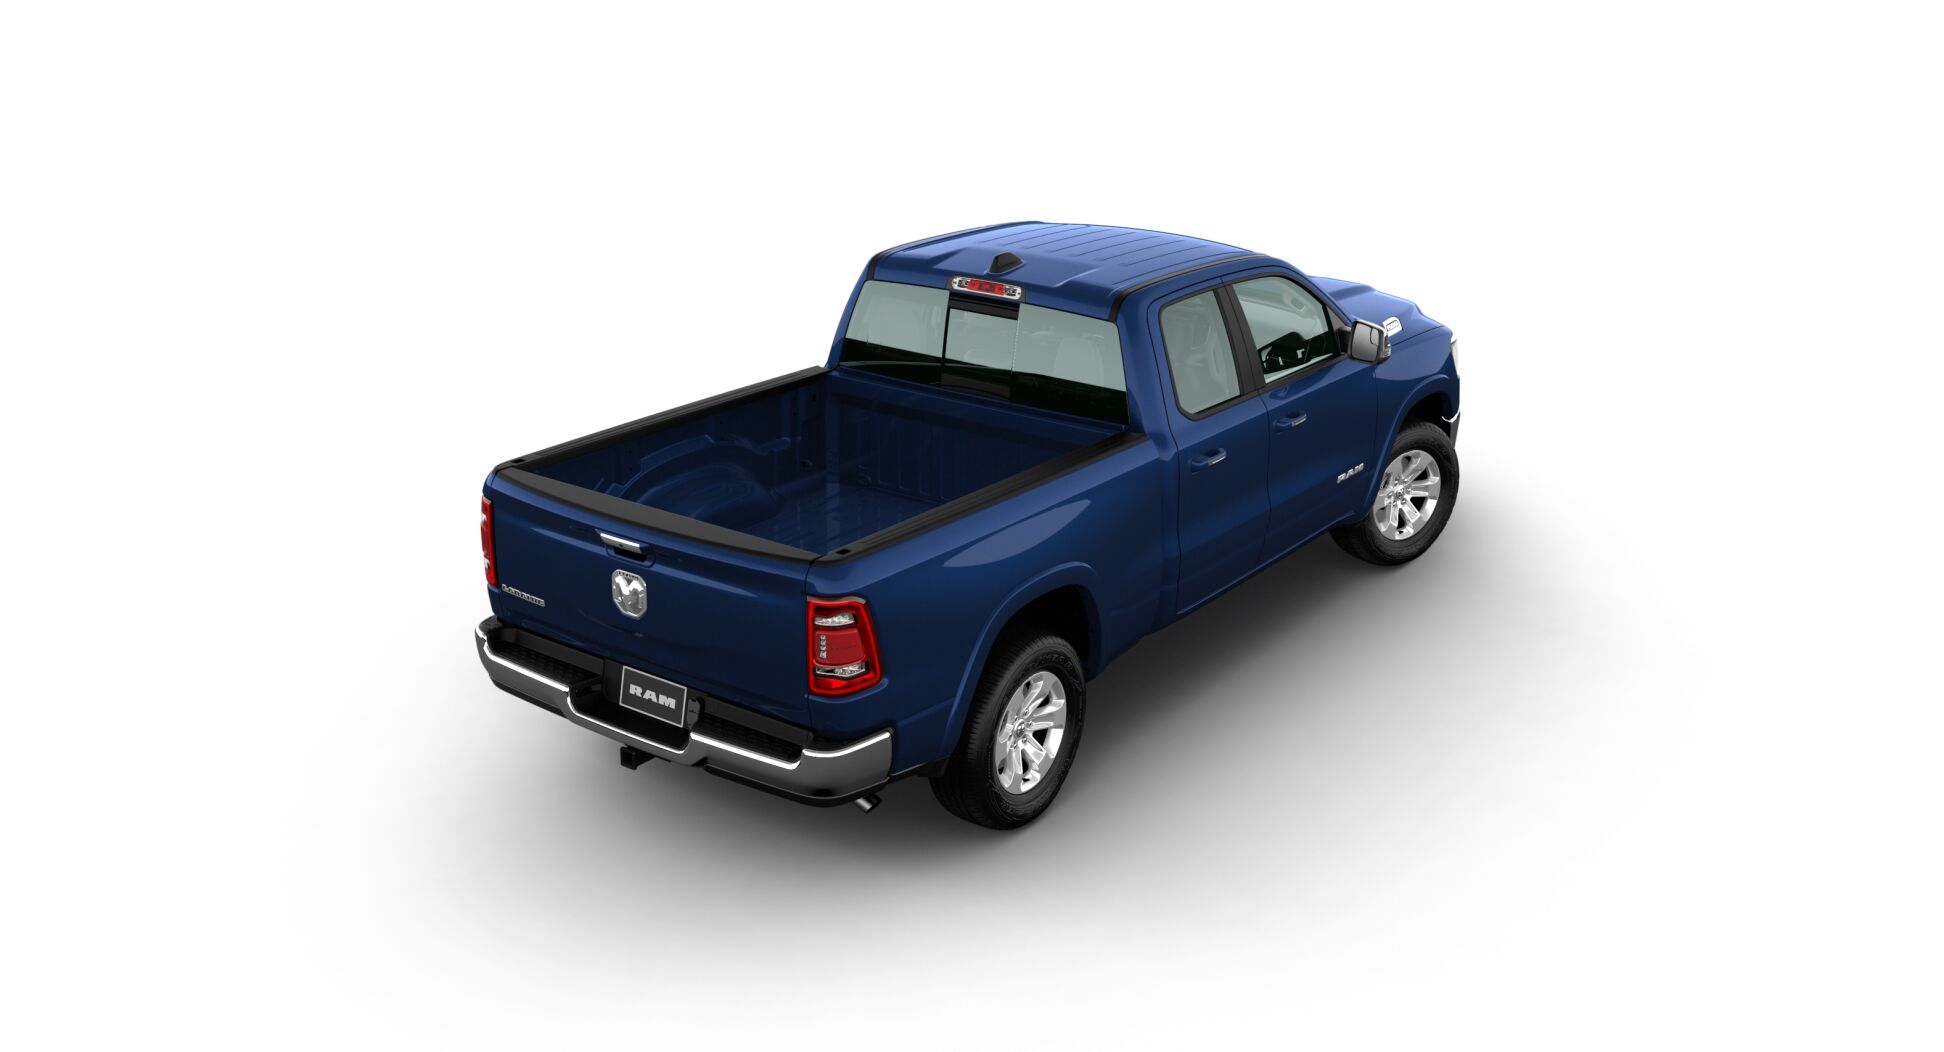 2020 Ram 1500 Laramie Rear Blue Exterior Picture